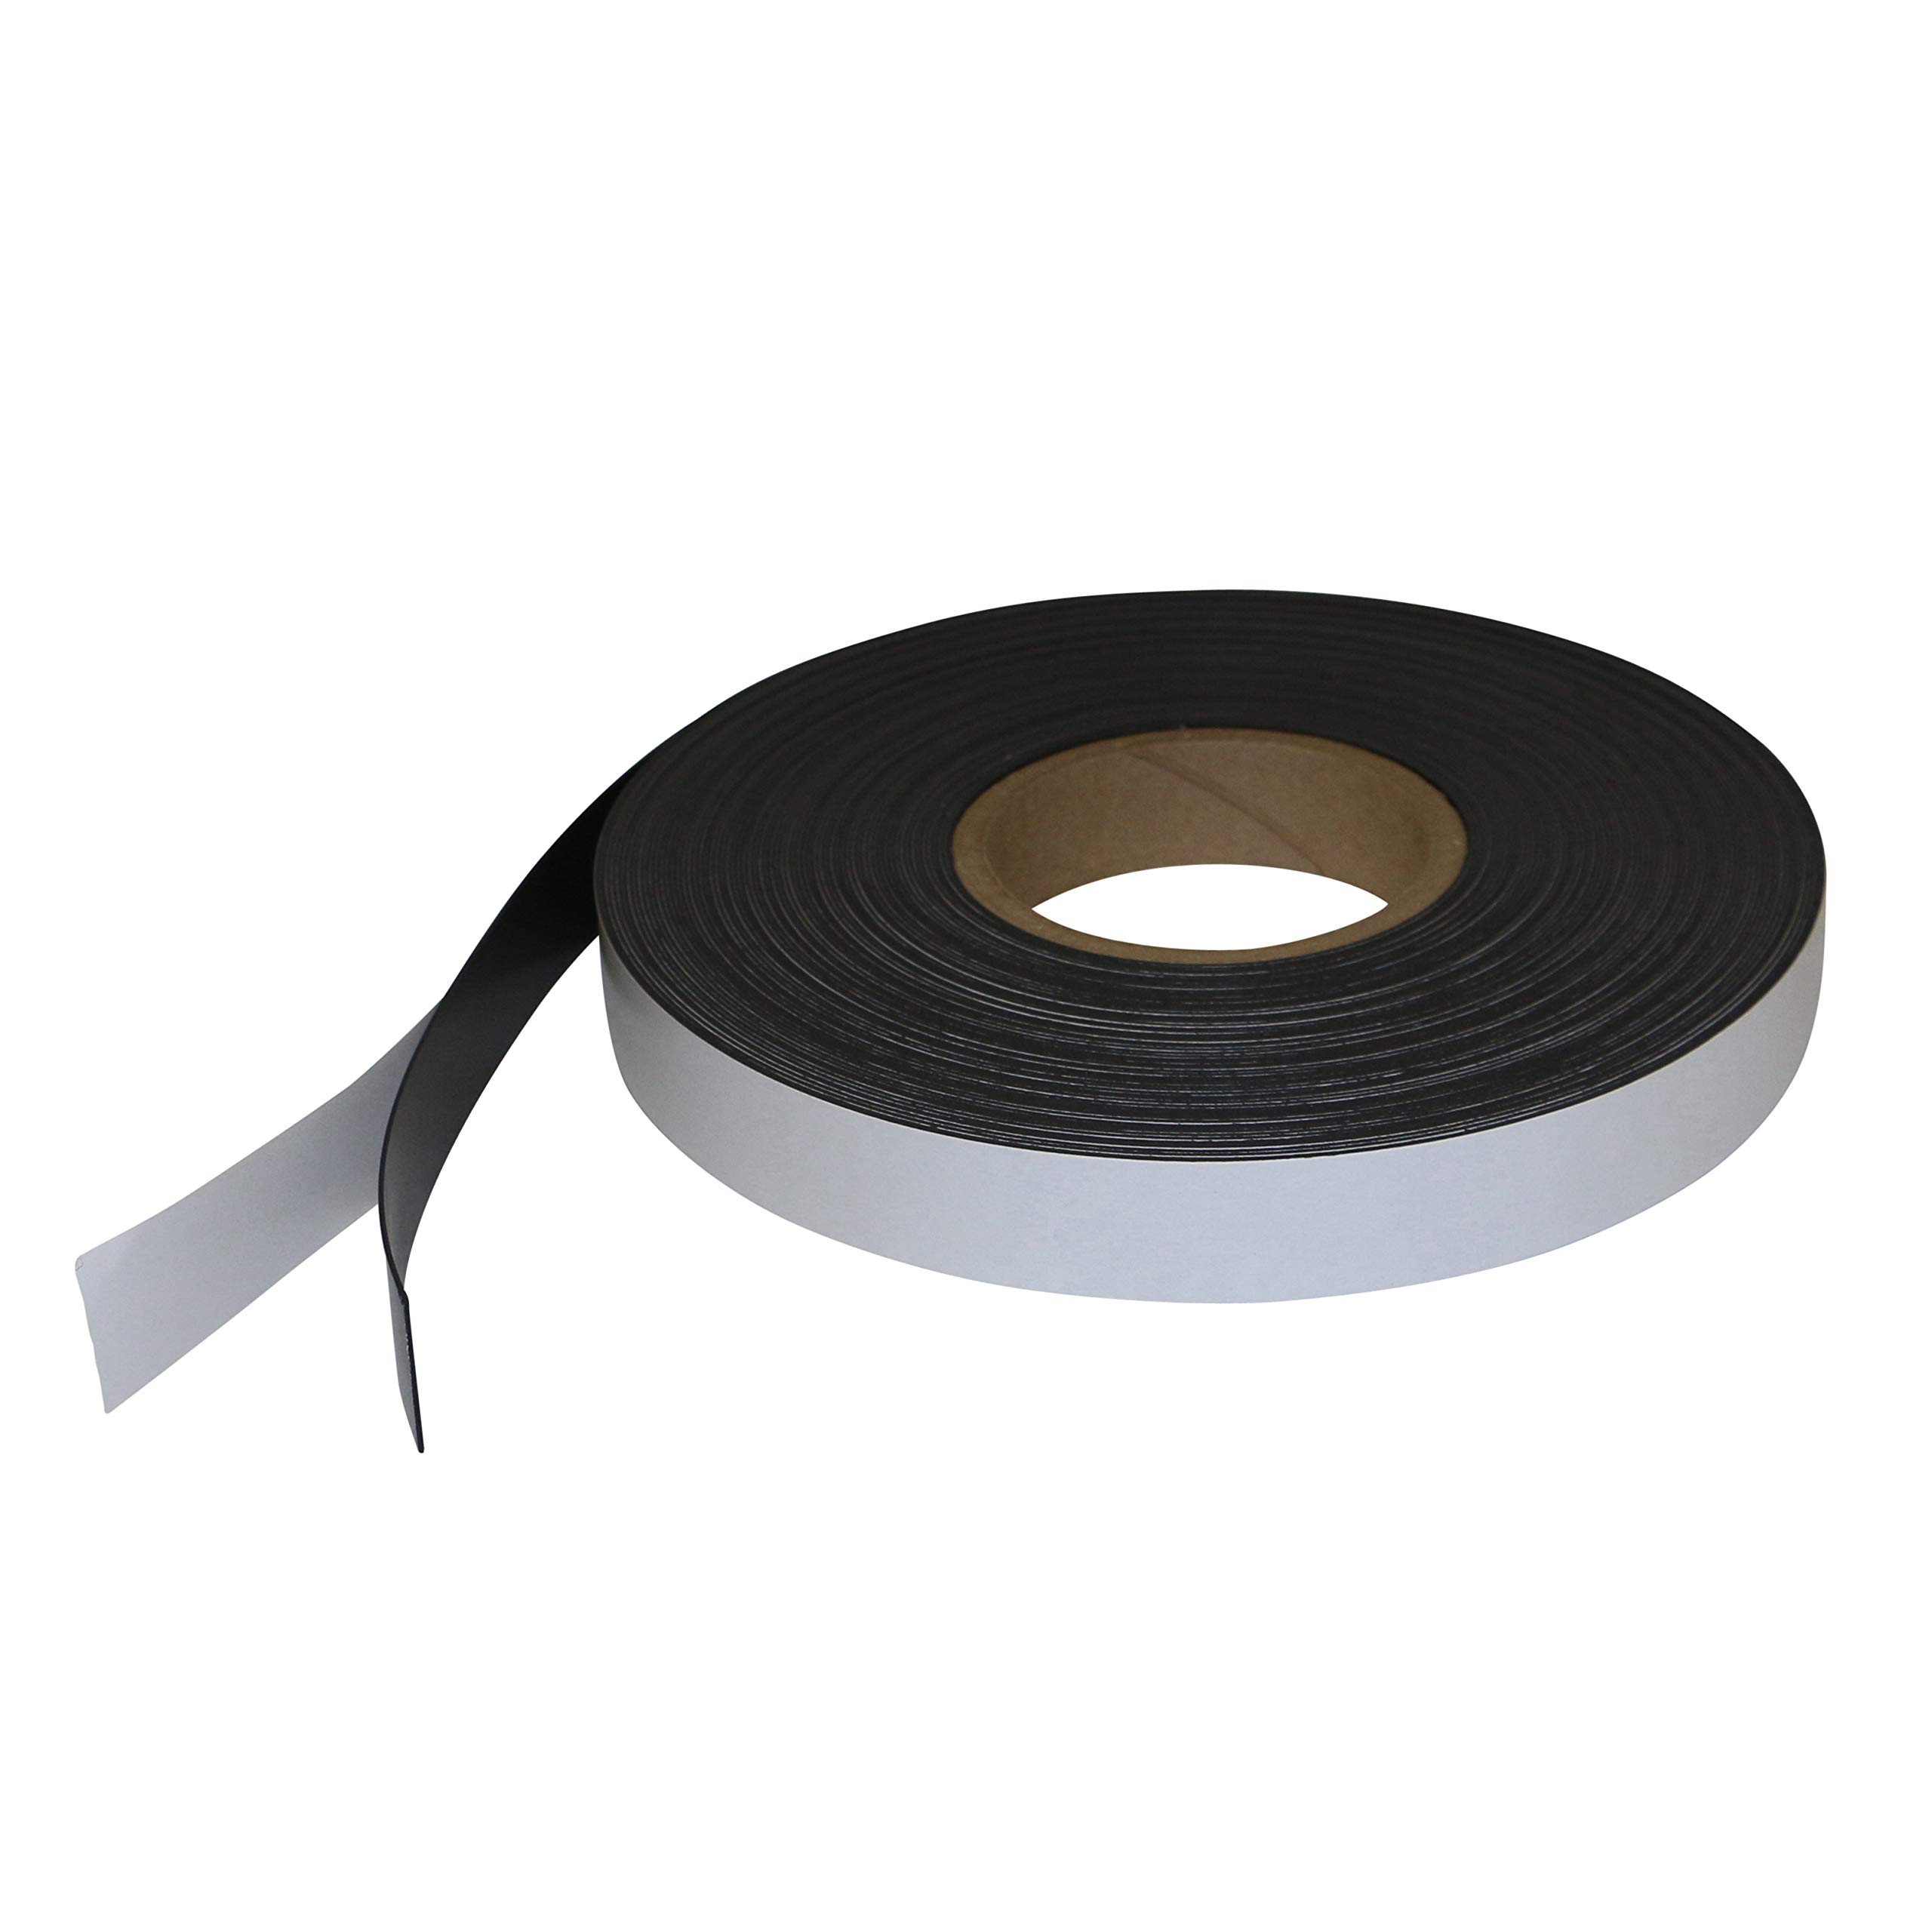 FindTape MGSPO Outdoor Magnetic Tape: 1 in. x 200 ft. (Black)